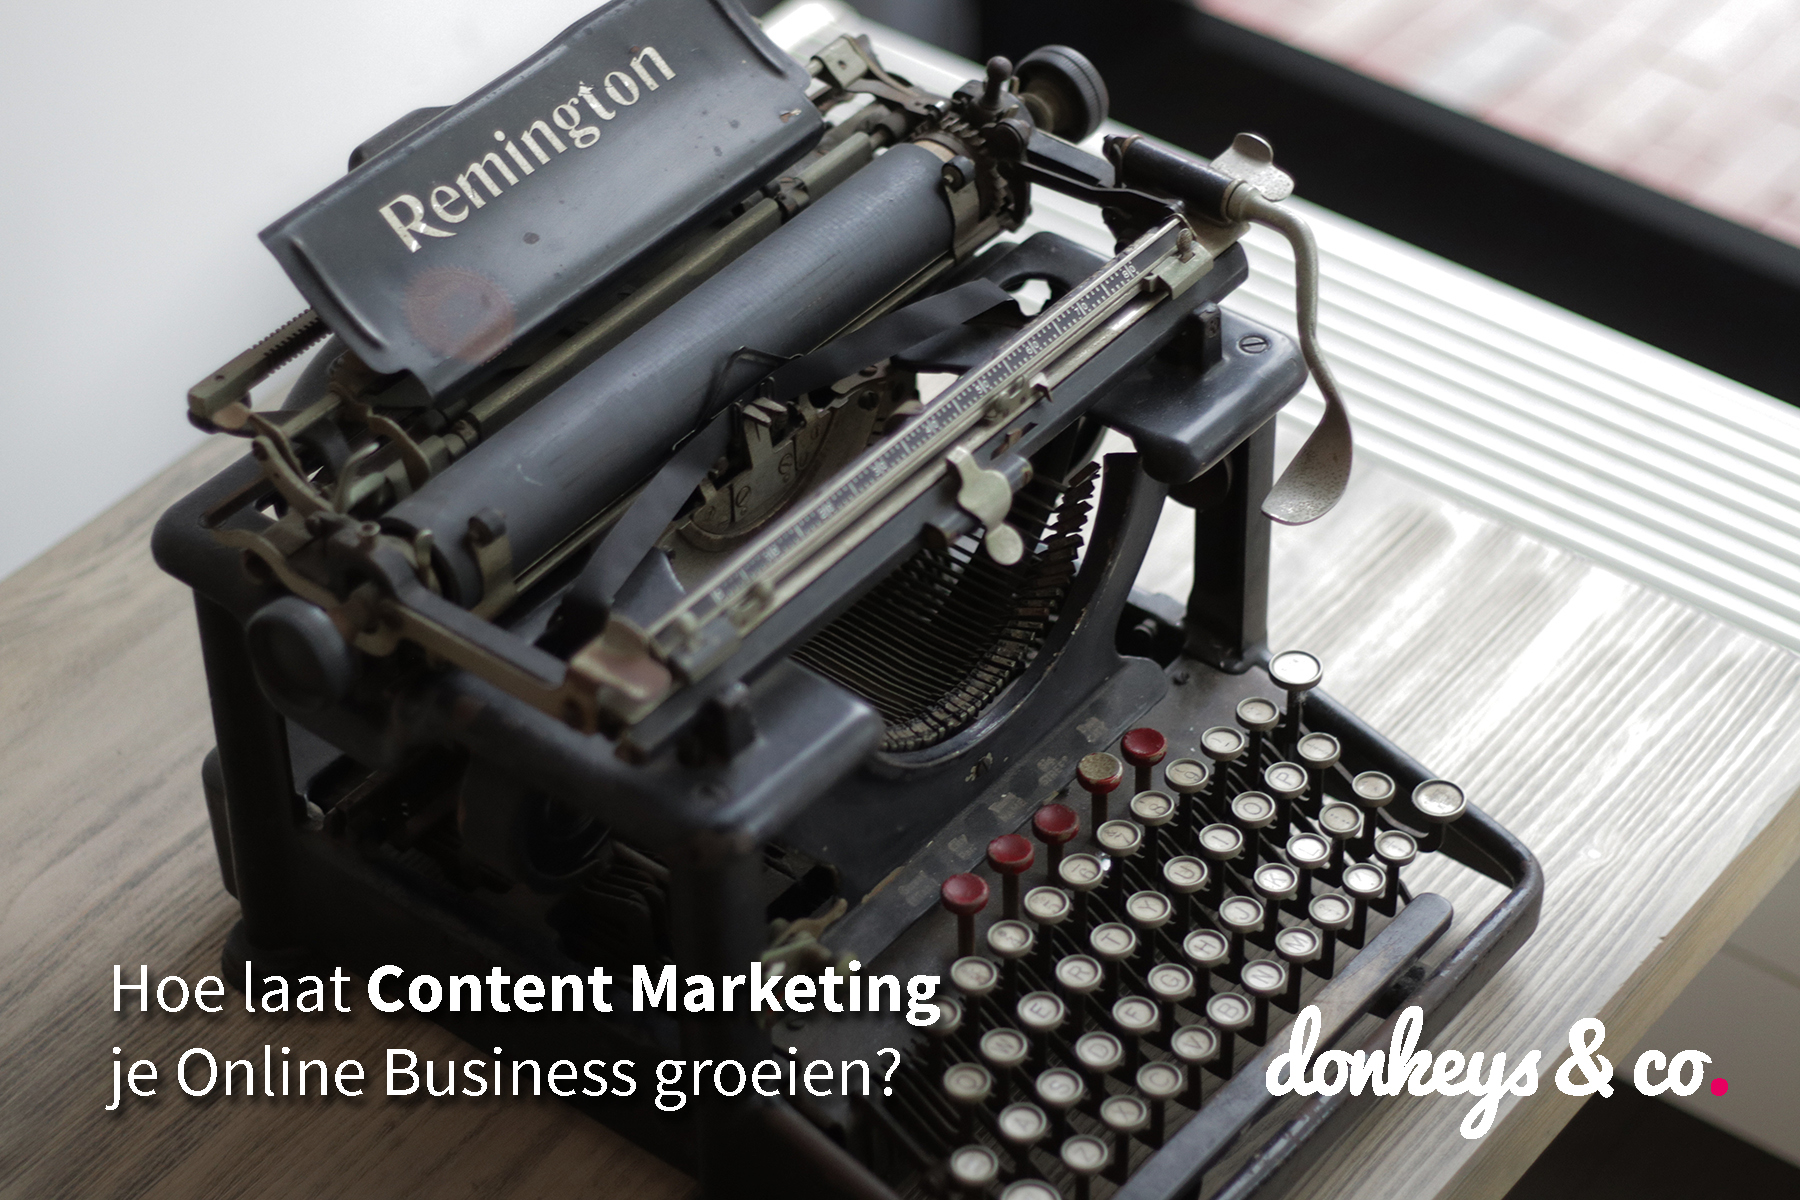 Hoe laat Content Marketing je Online Business groeien?